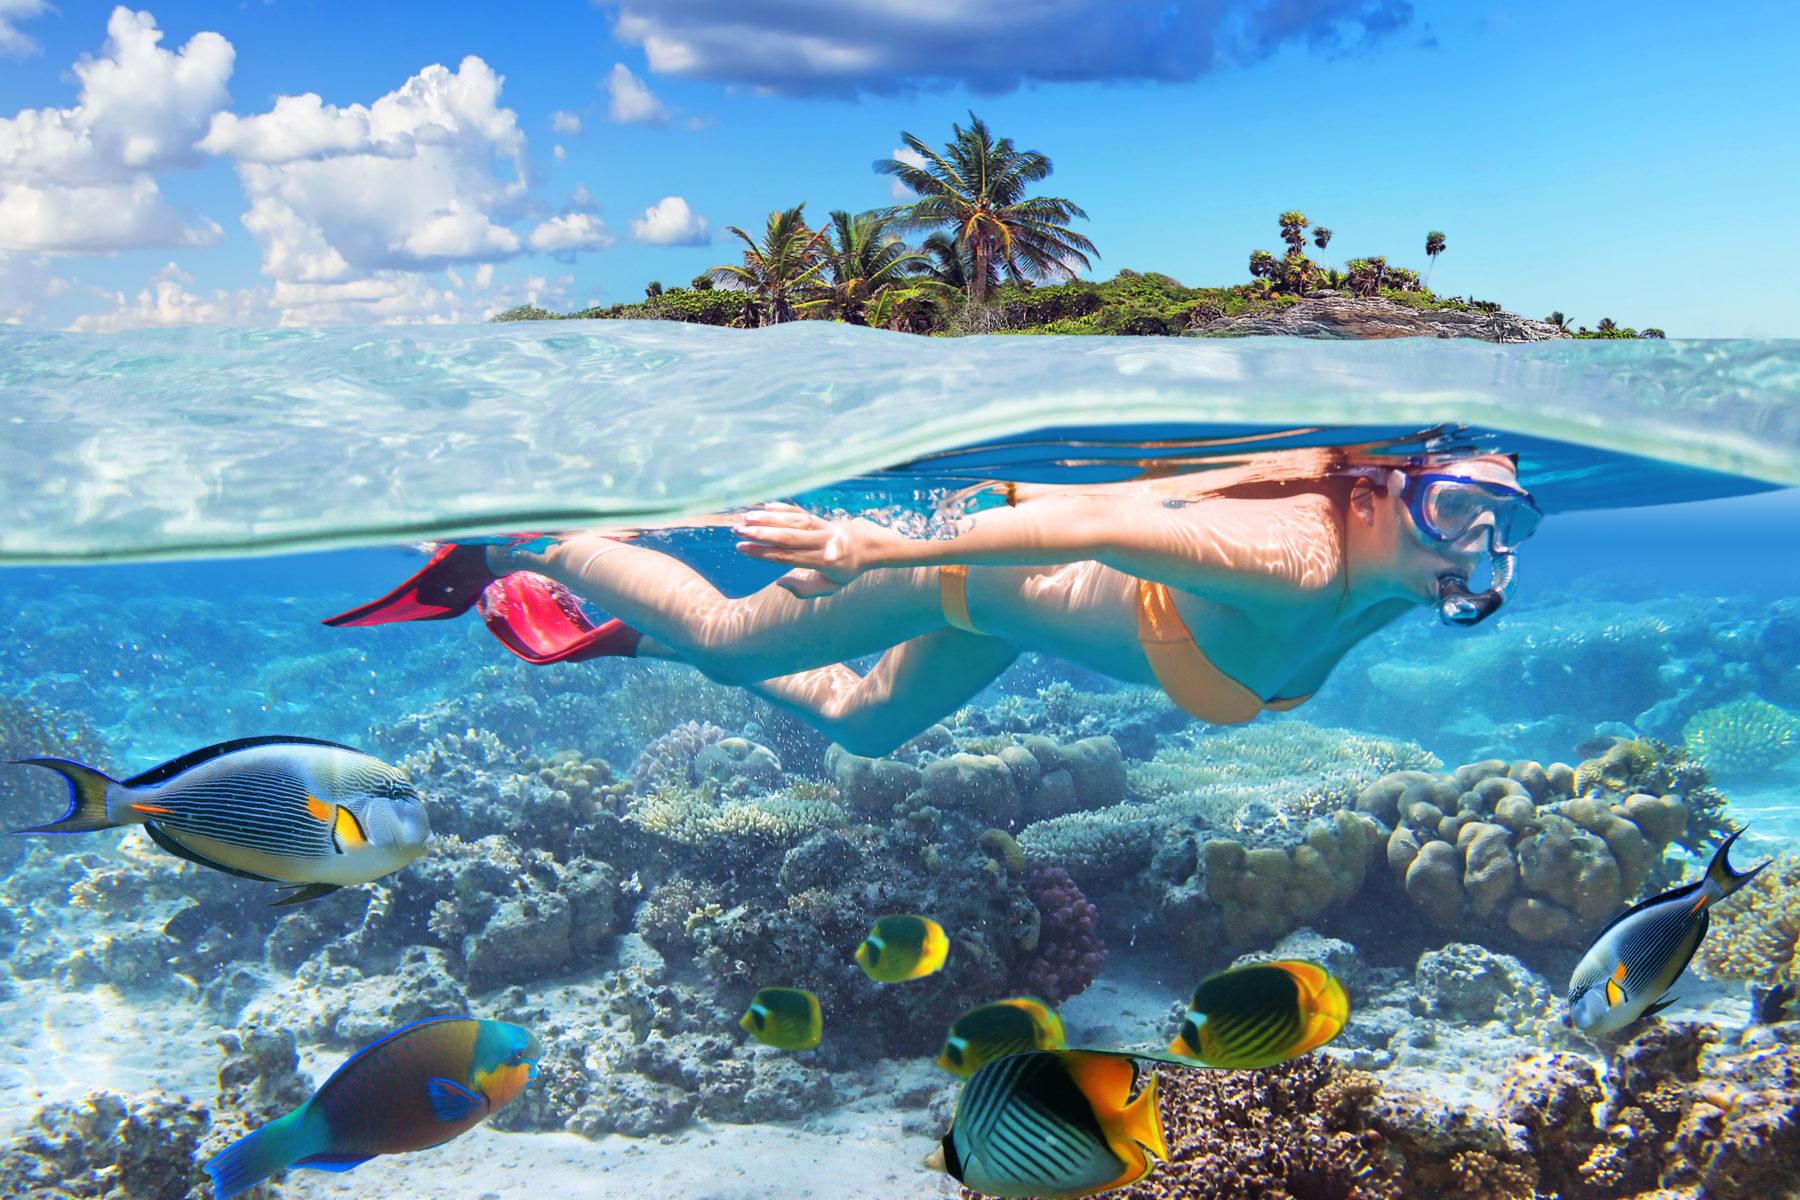 Snorkeling in tropical waters